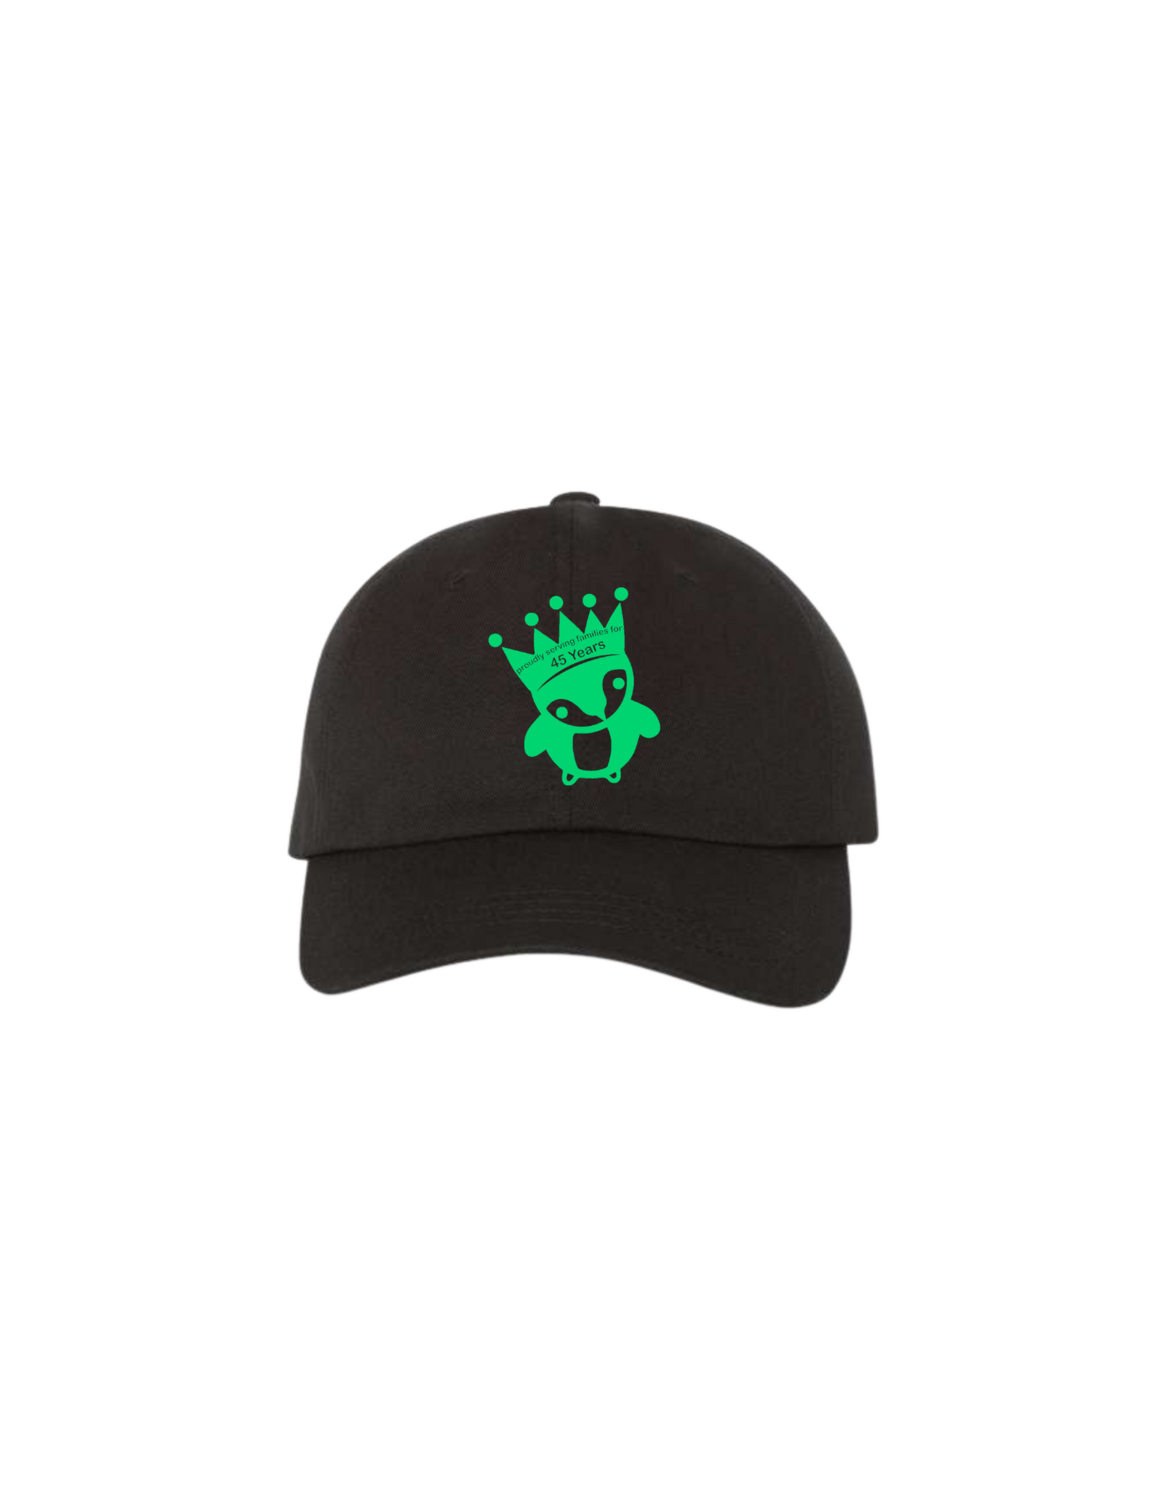 45th Hat - Youth